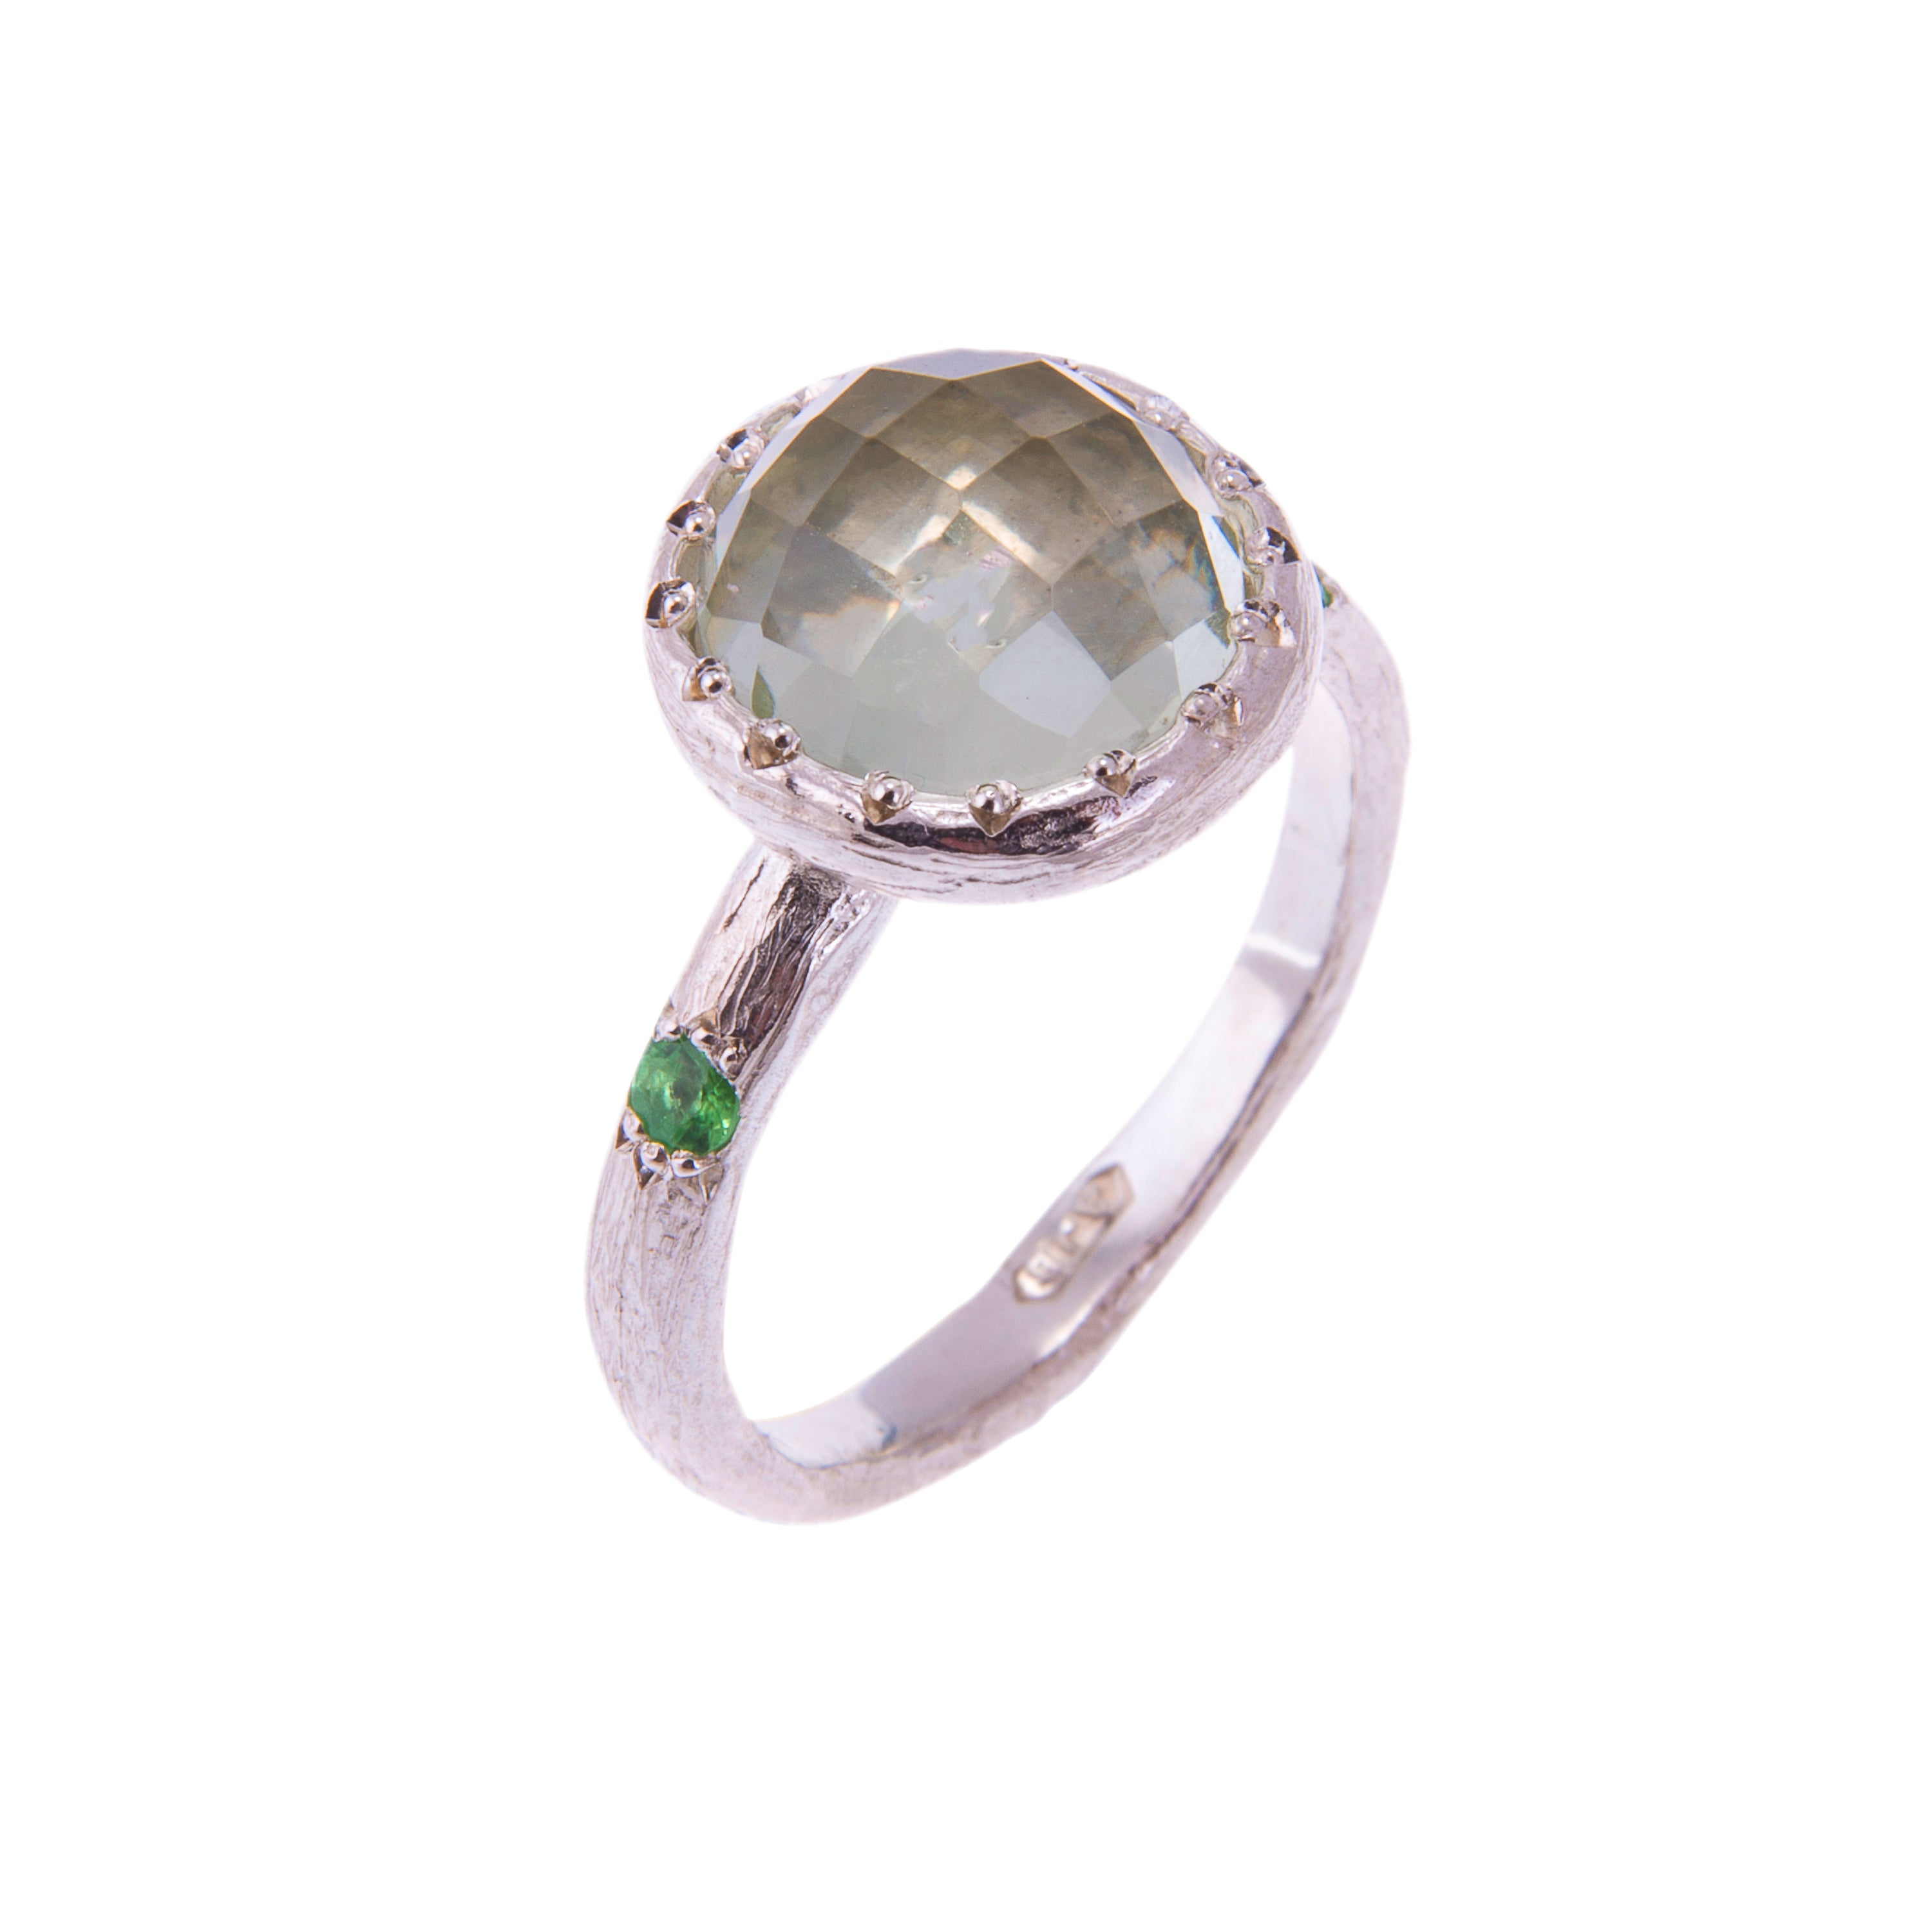 sku green ring rings product gemstone tags halo jewelry shing categories diamond tf color on white tourmaline gold oval collections